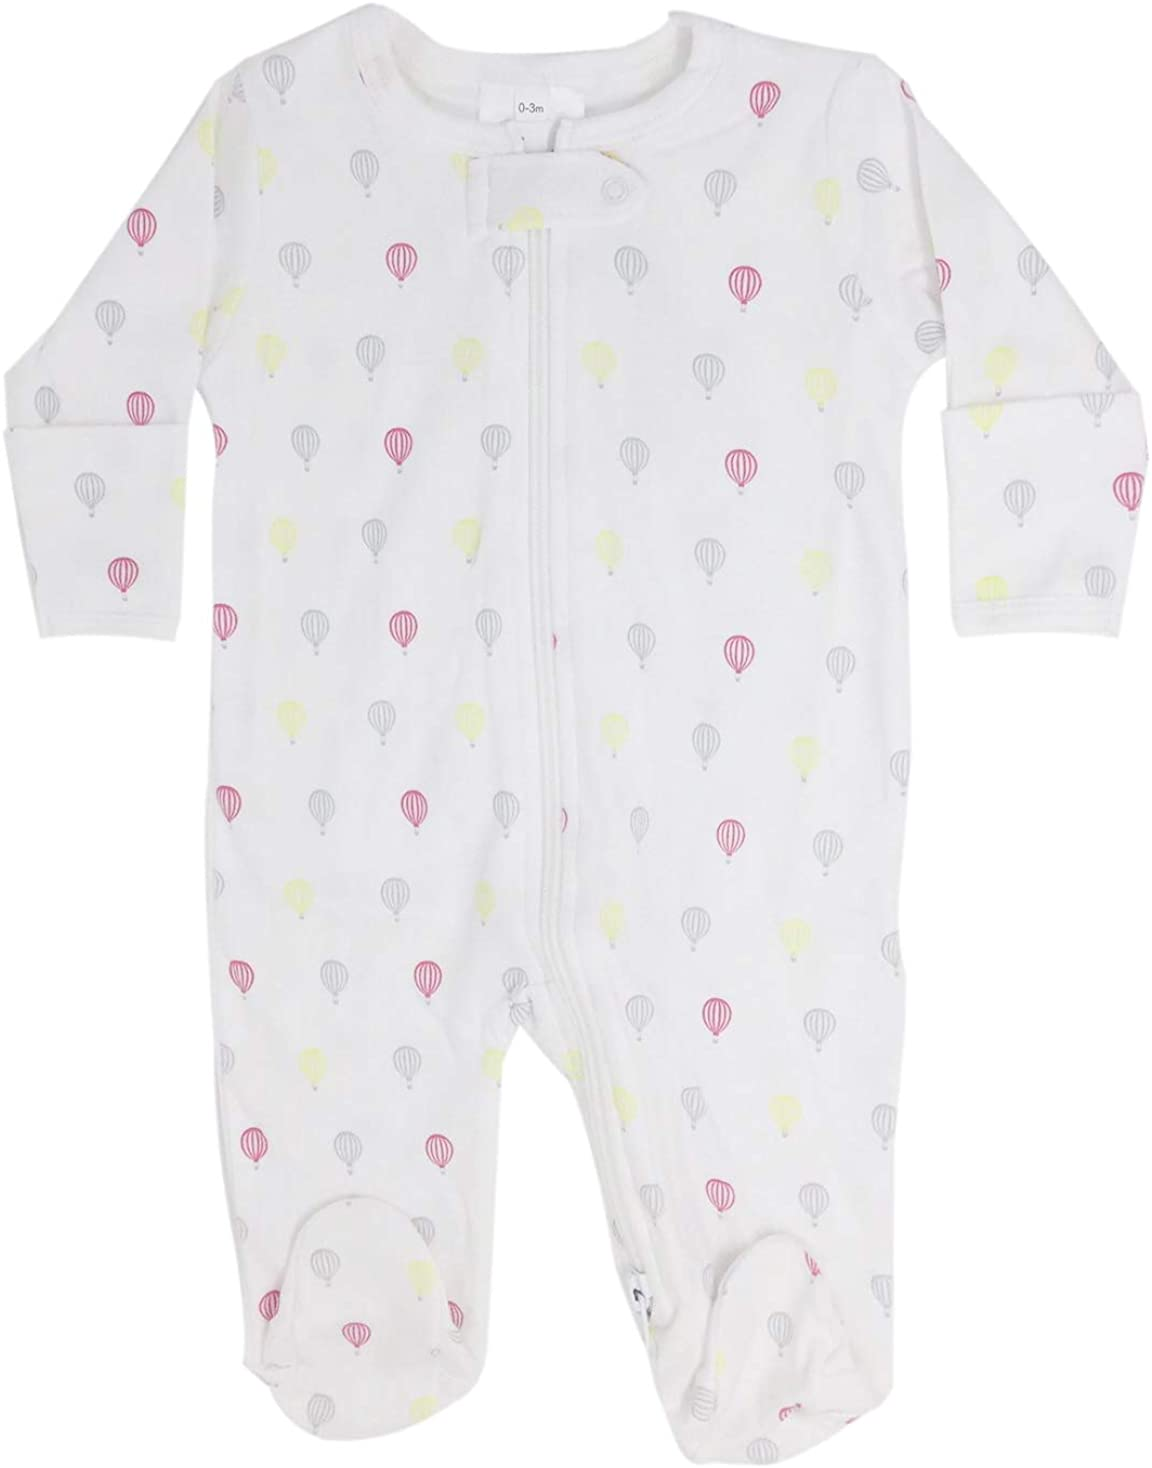 Tiny hot air Balloons Print Zipper Footie Hypoallergenic pima Cotton (White/Pink/Yellow, 0-3 Months)